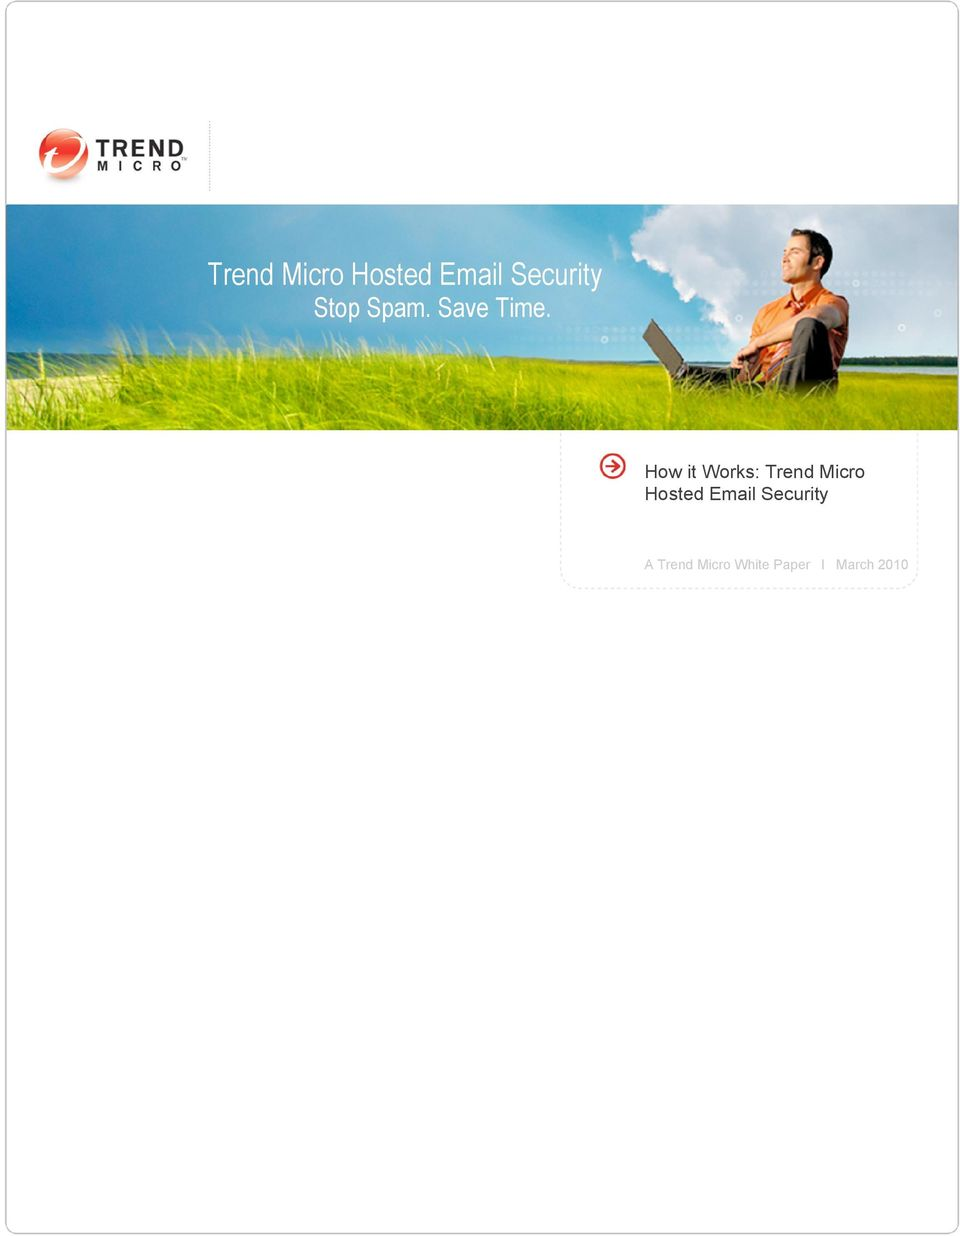 How it Works:  A Trend Micro White